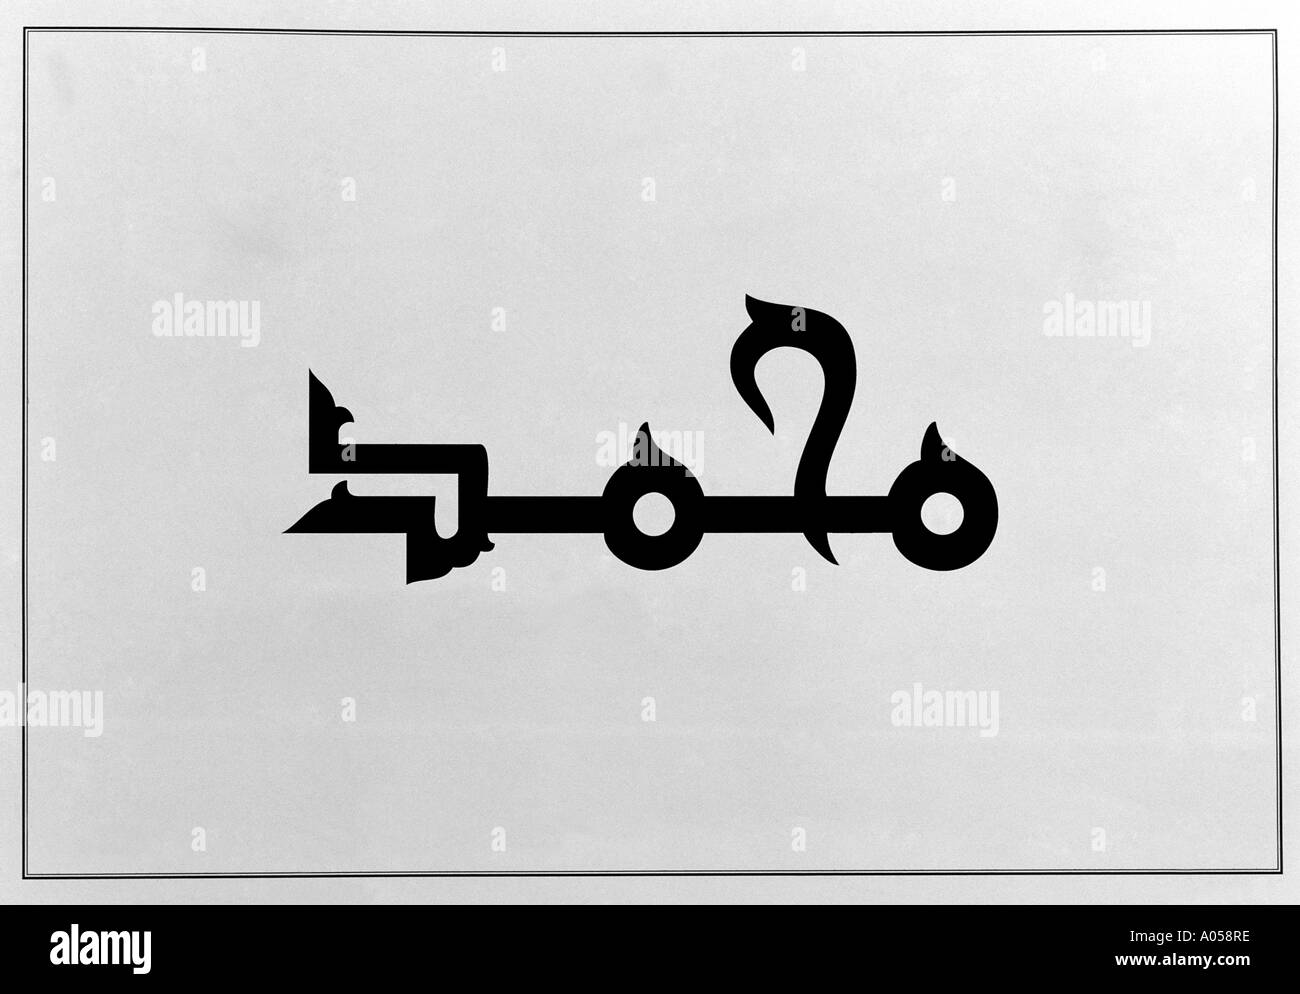 Islamic Calligraphy Muhammad Stock Photos Image